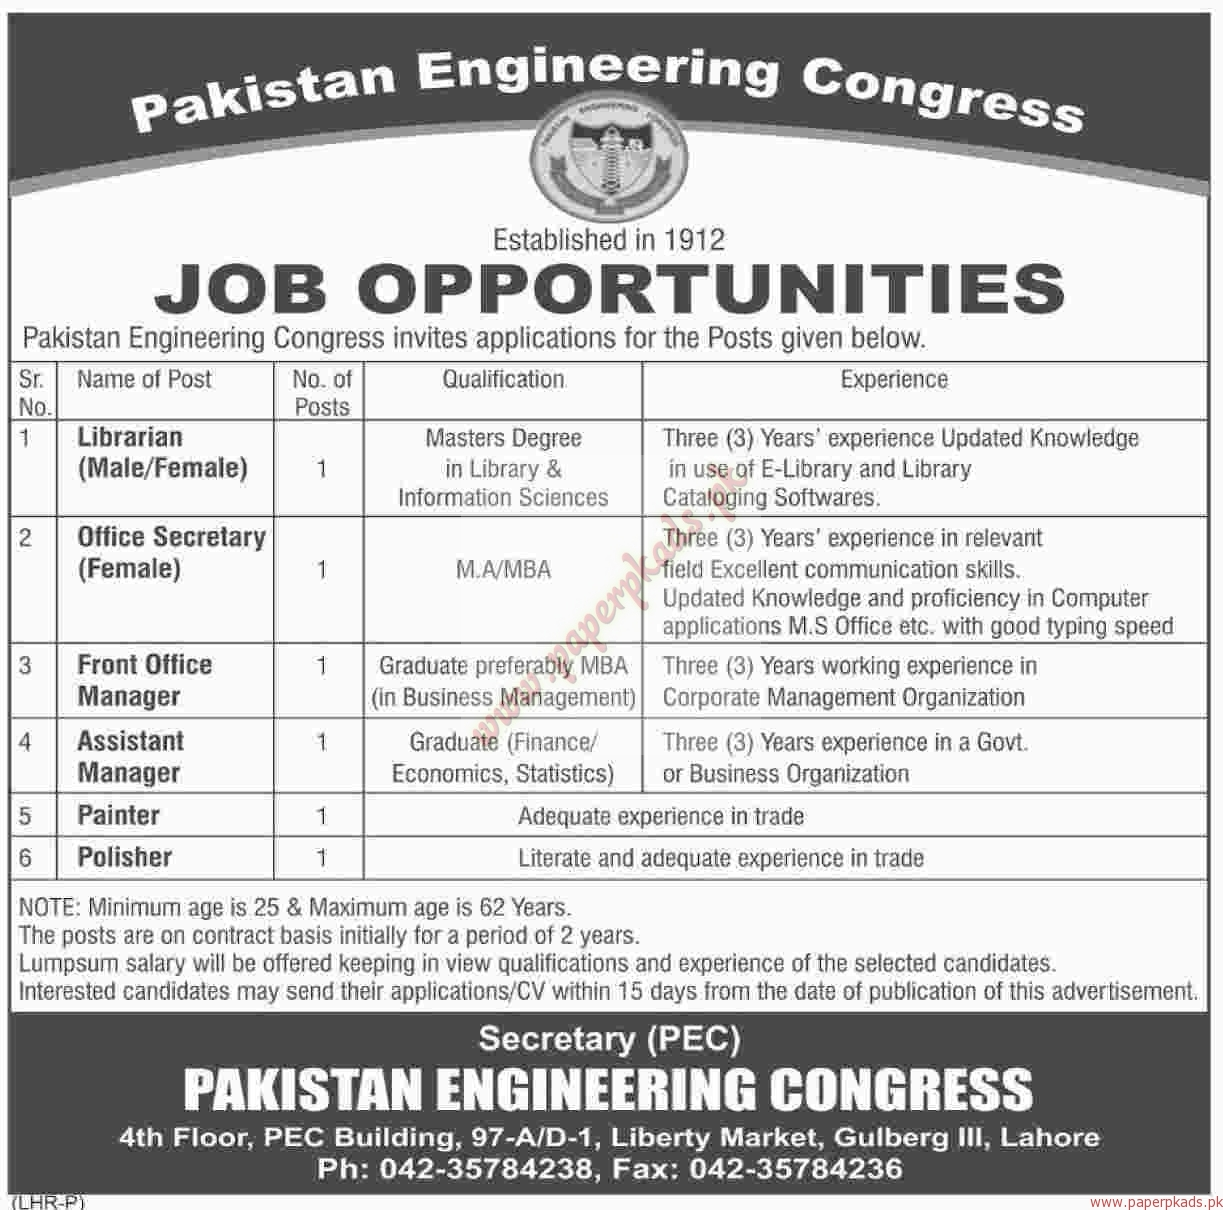 Pakistan Engineering Congress Jobs - Dawn Jobs ads 03 January 2017